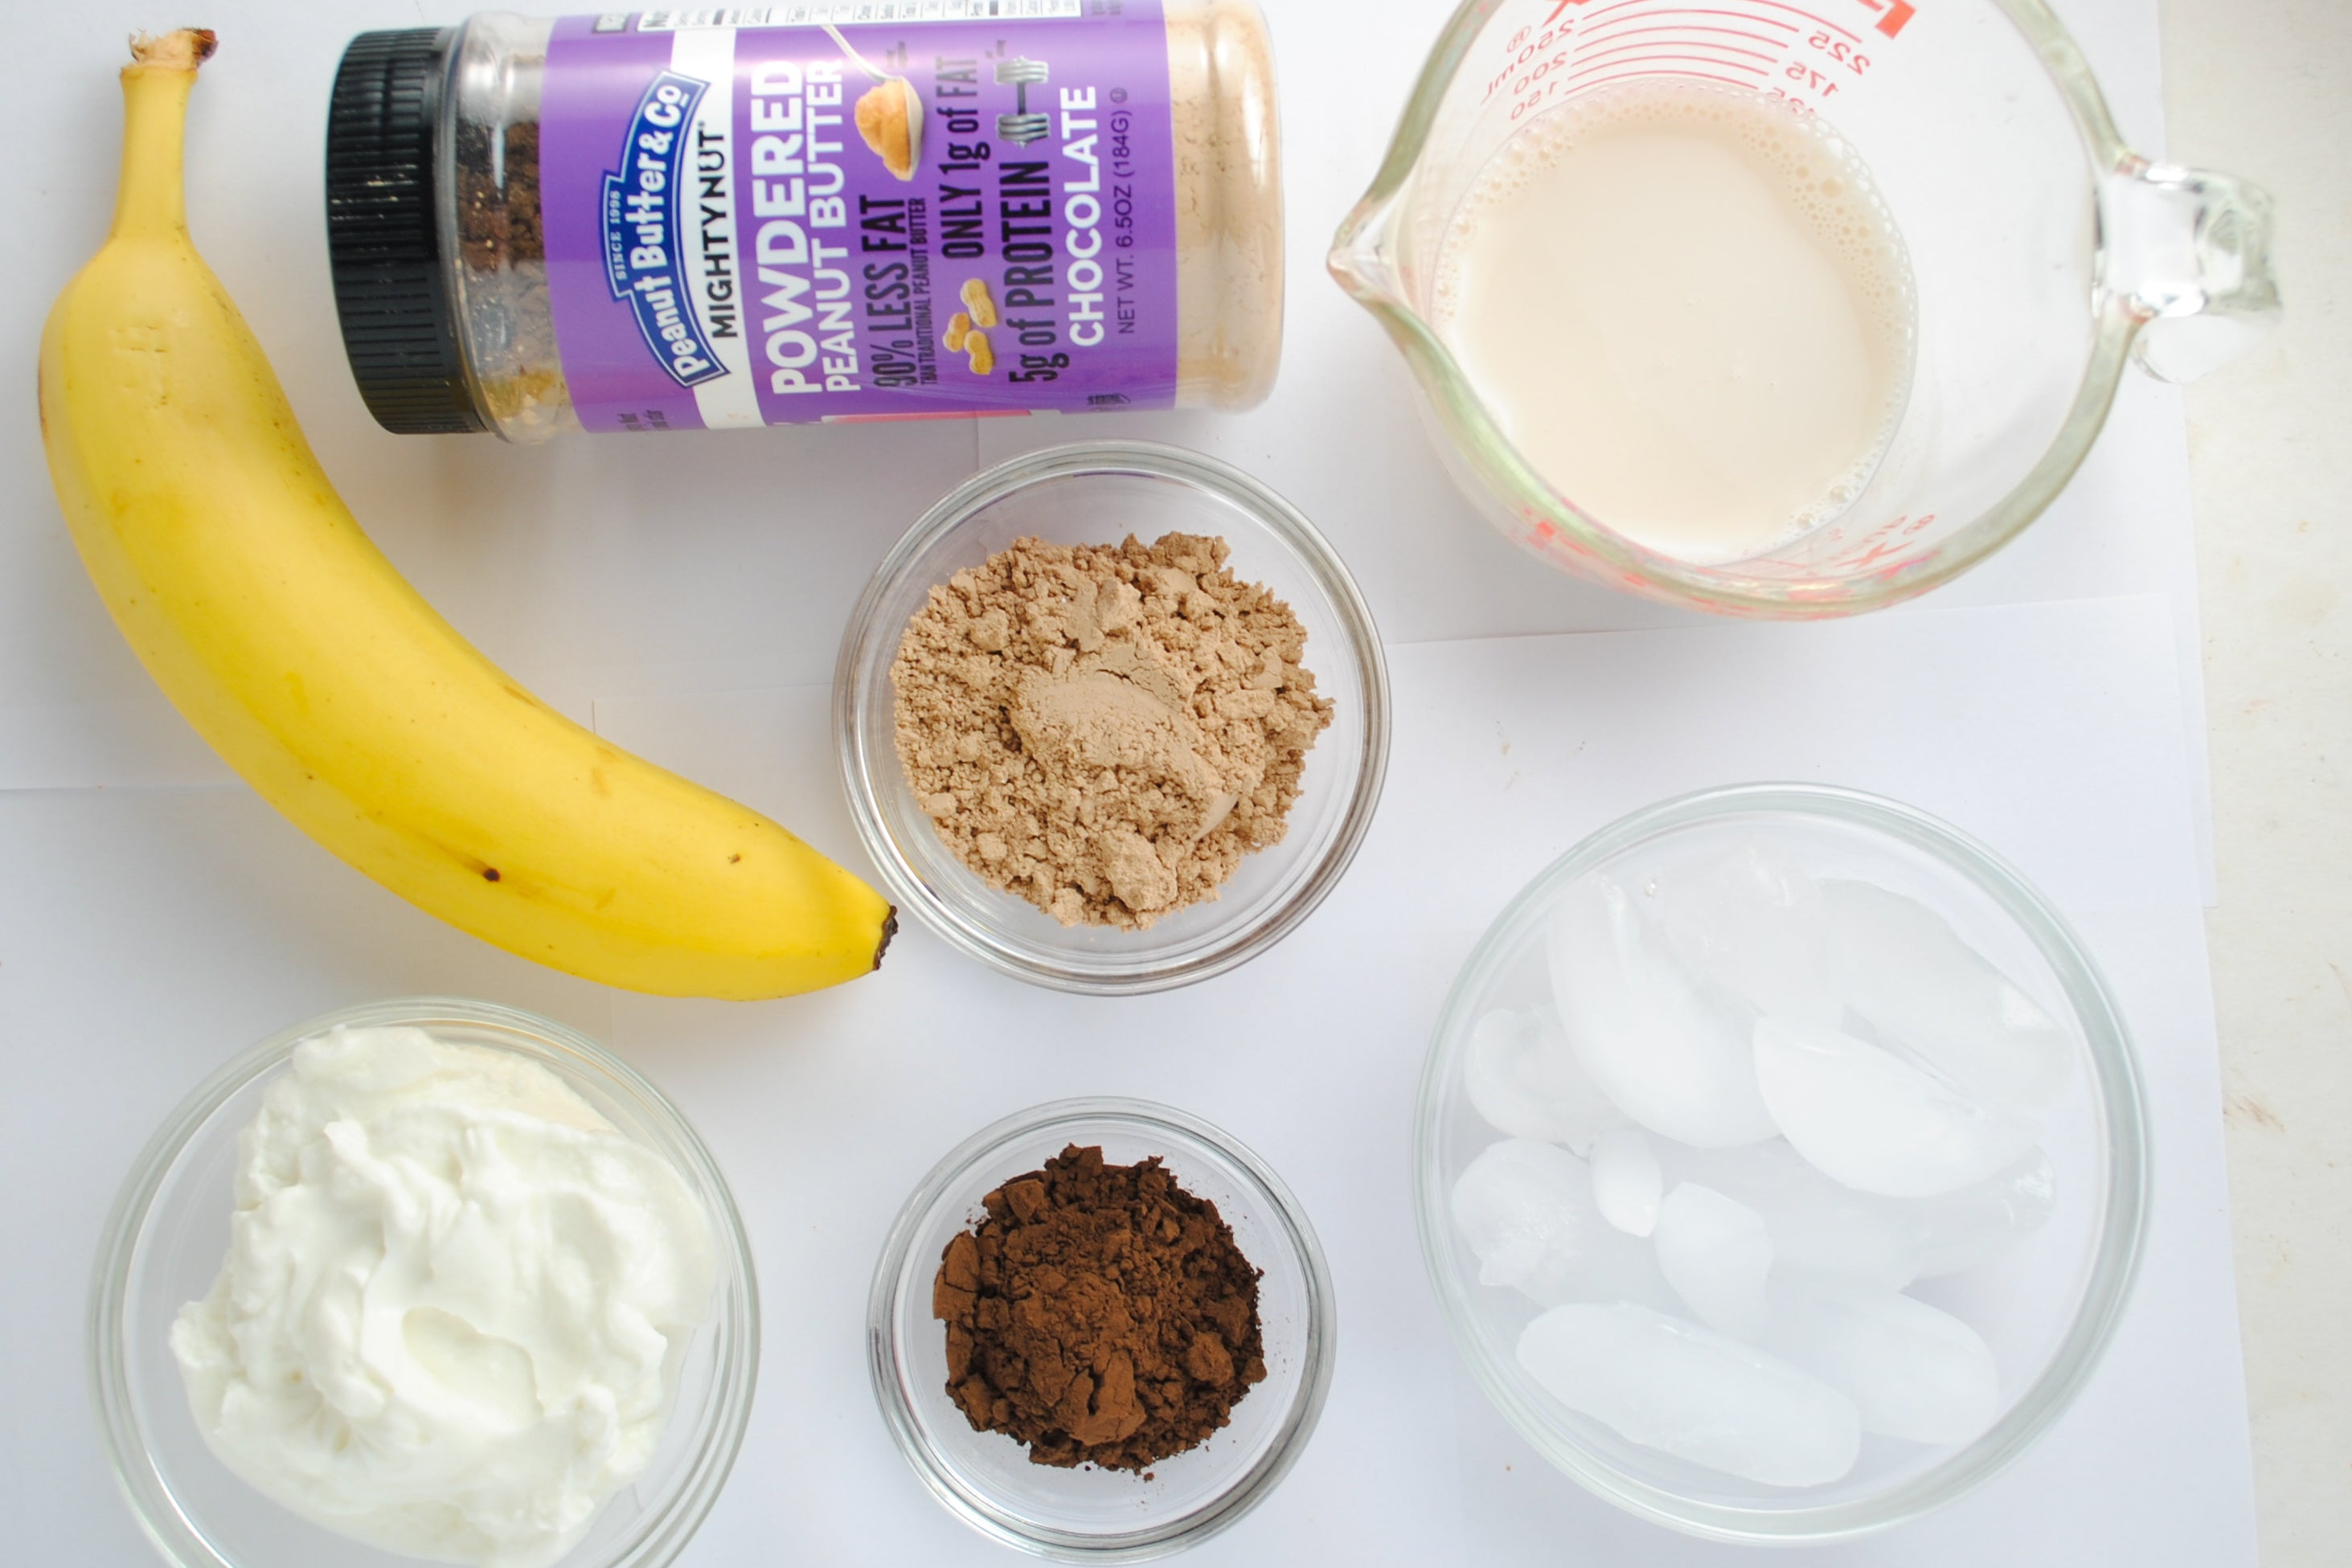 Chocolate Peanut Butter Banana Smoothie Ingredients - Mighty Nut Chocolate powdered peanut butter